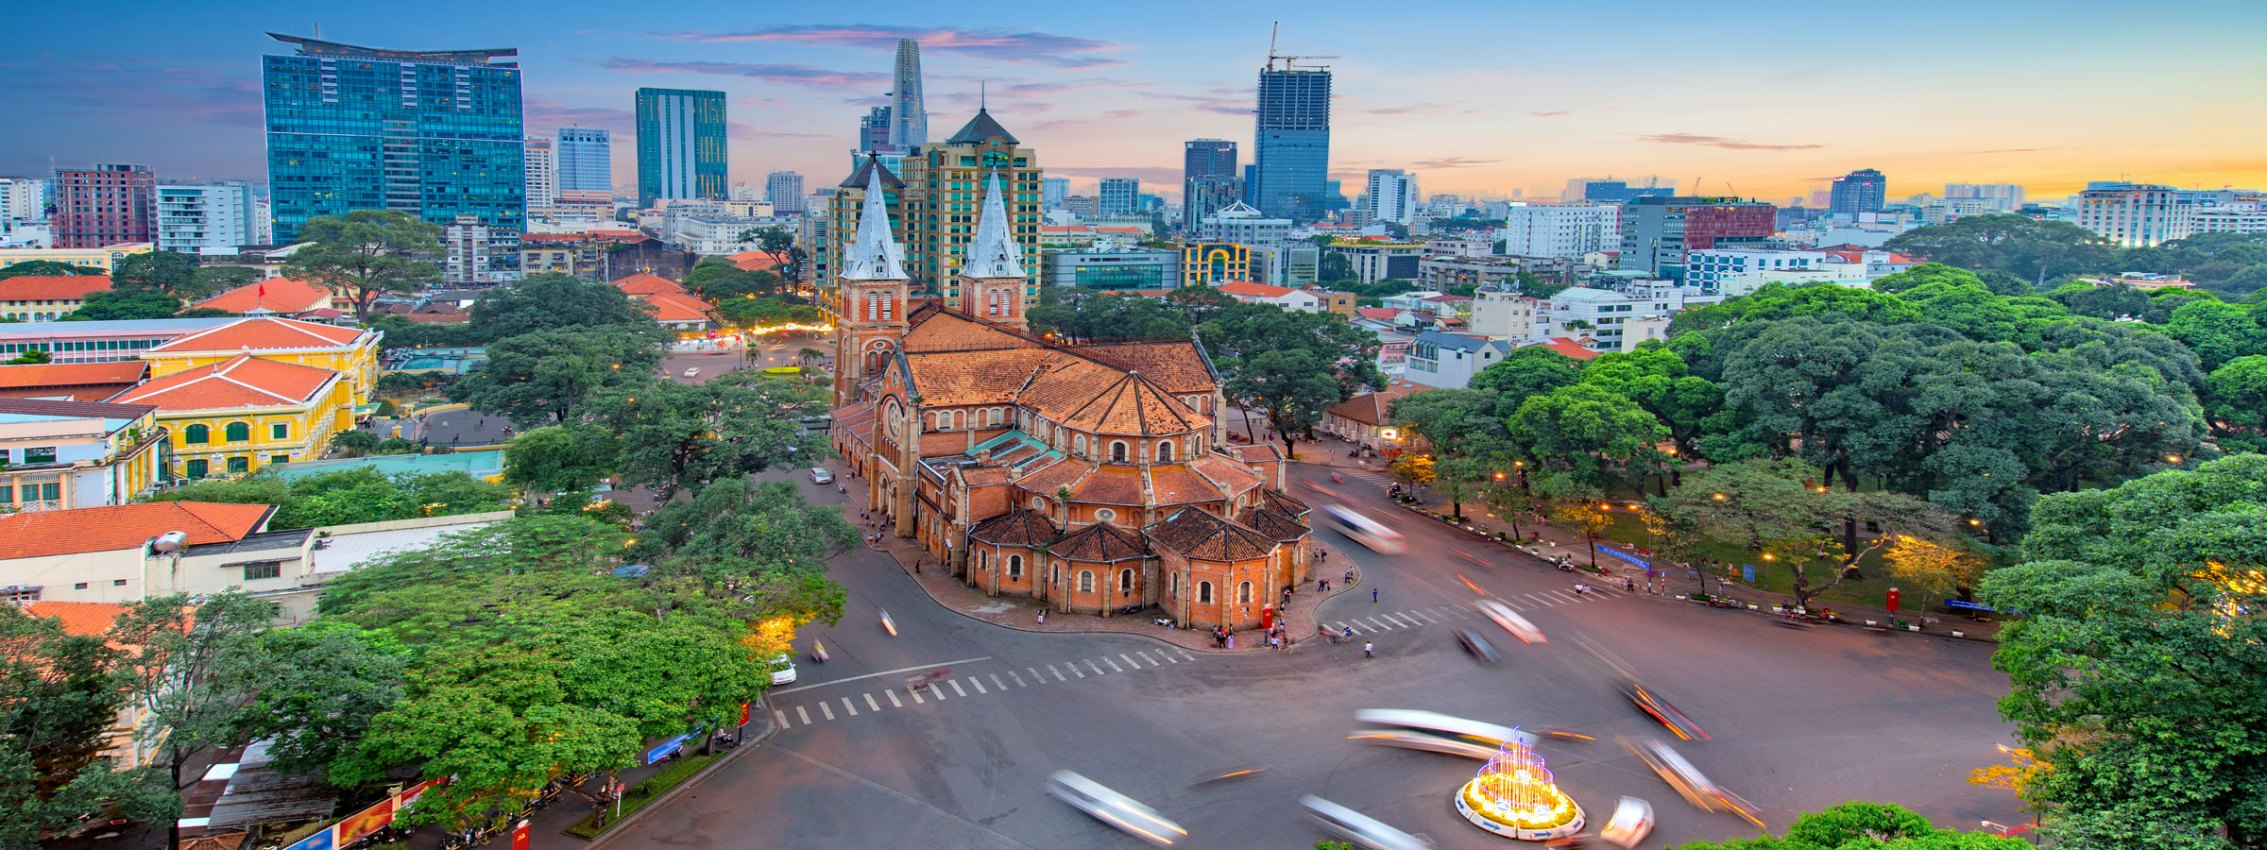 Places To Visit In Ho Chi Minh City,Best Time To Visit Ho Chi Minh City